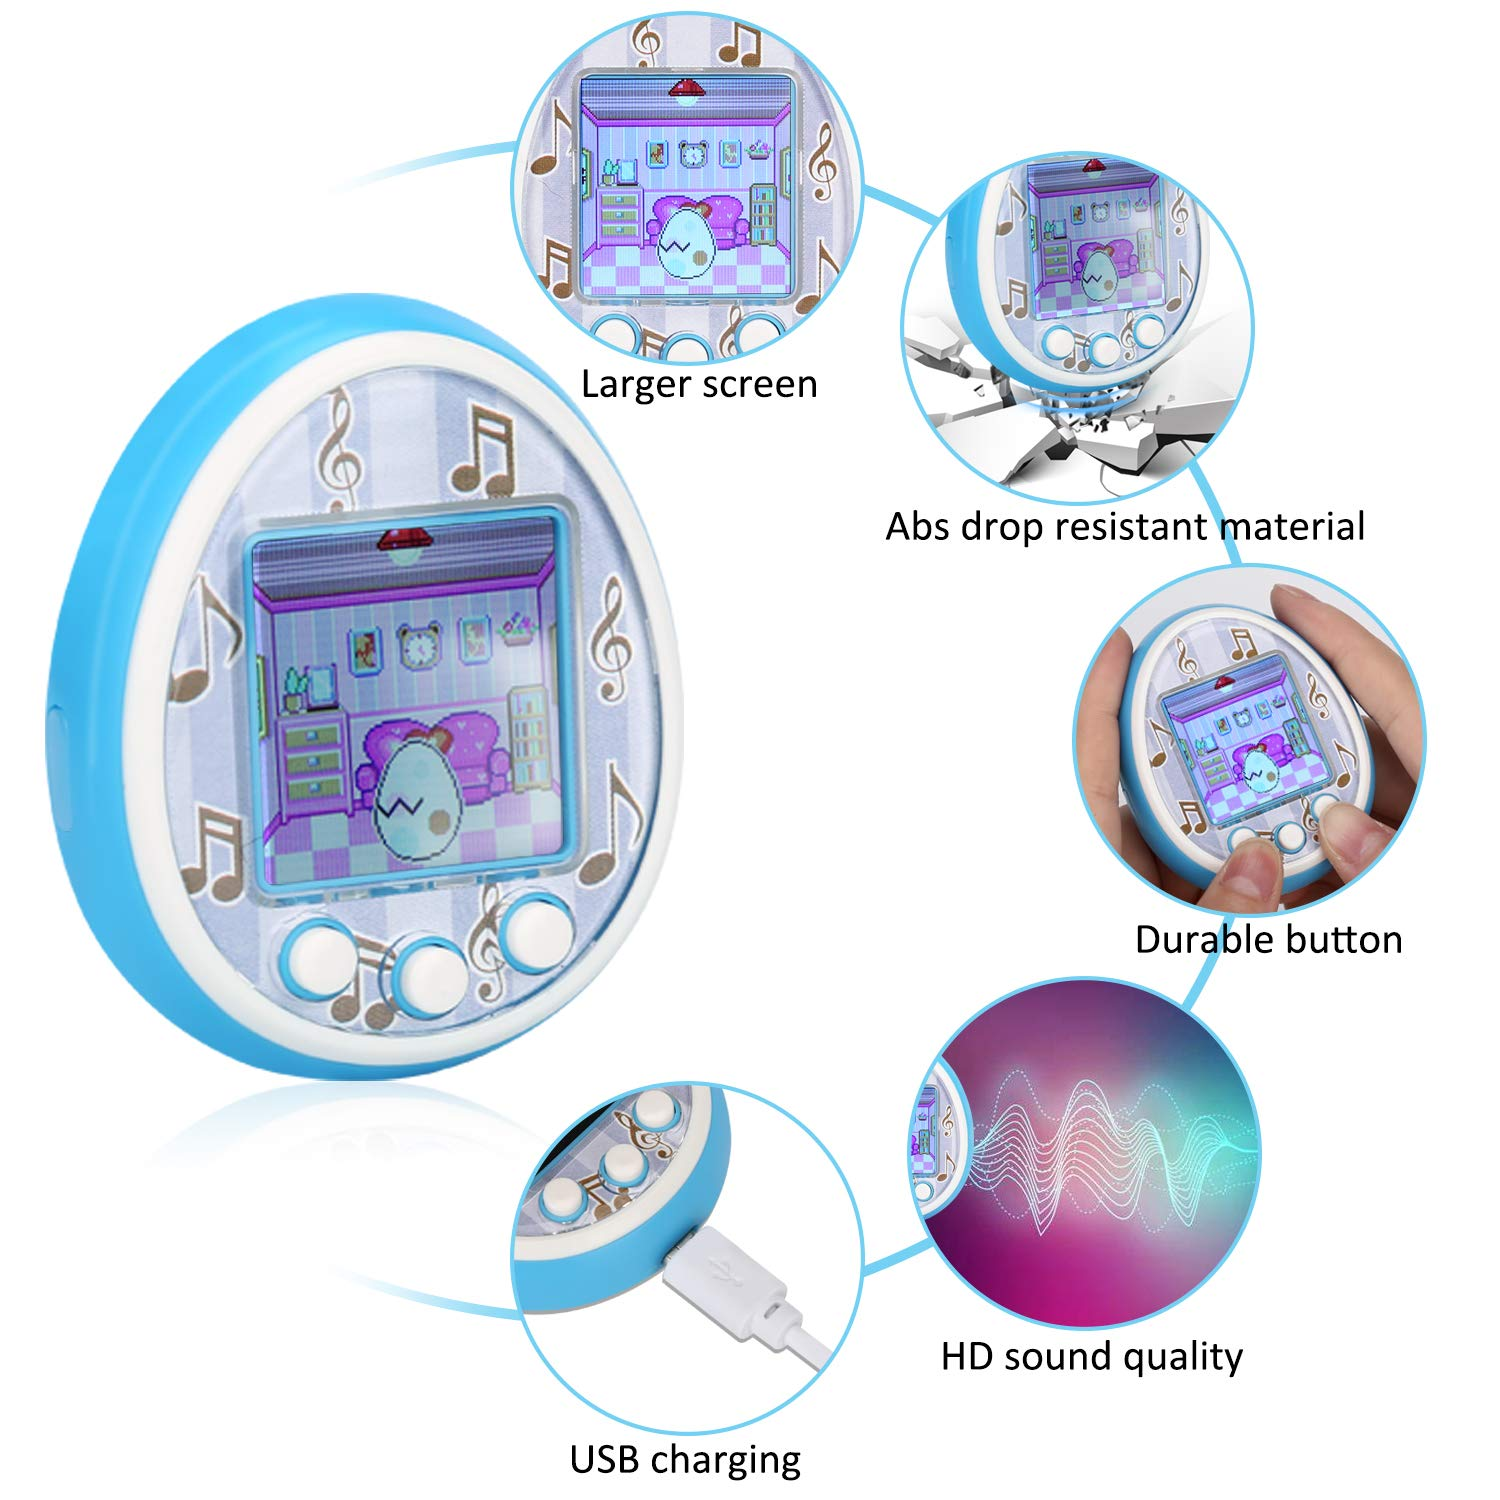 Fantasy Kids Virtual Pet Game Machine Electronic controler Toys-(2019 HD Color Screen,Wireless Interaction,USB Rechargeable,Over 30 Kinds of Gameplay,Toy Gifts for Boys Girls Toddlers(Blue) by Fantasy (Image #2)